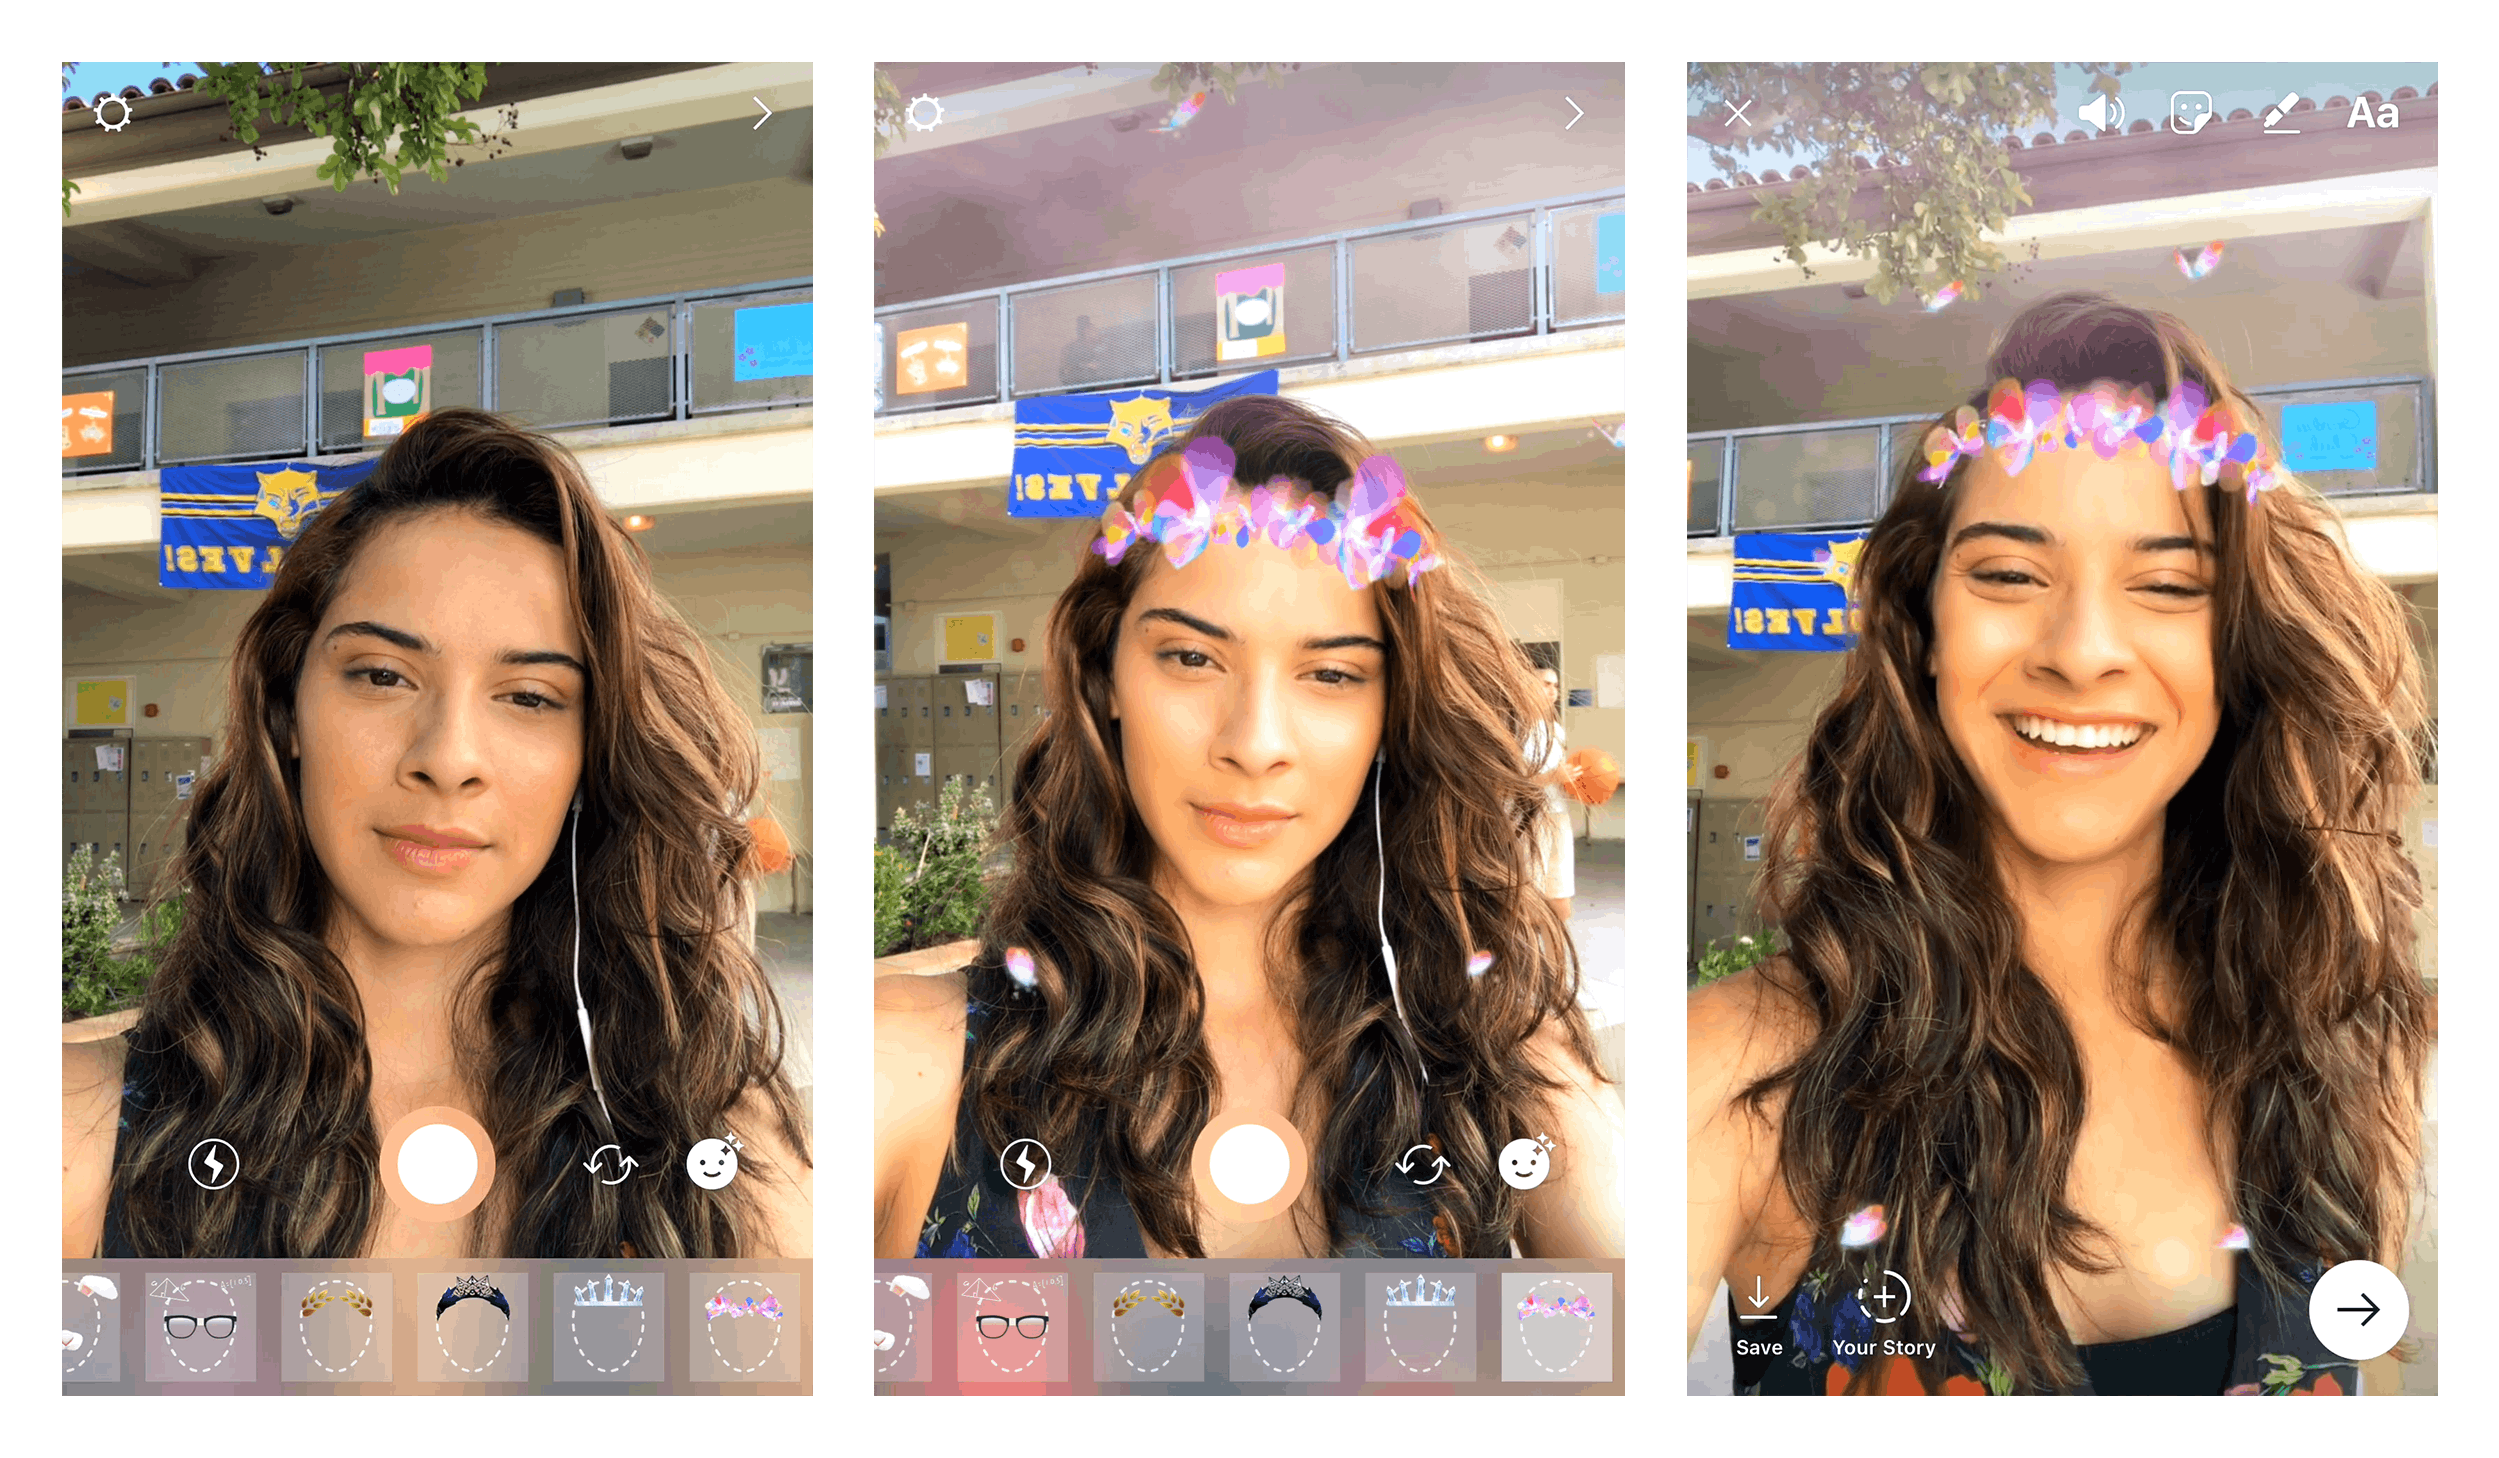 Instagram Copies Snapchat Once Again, Introduces AR Face Filters & More